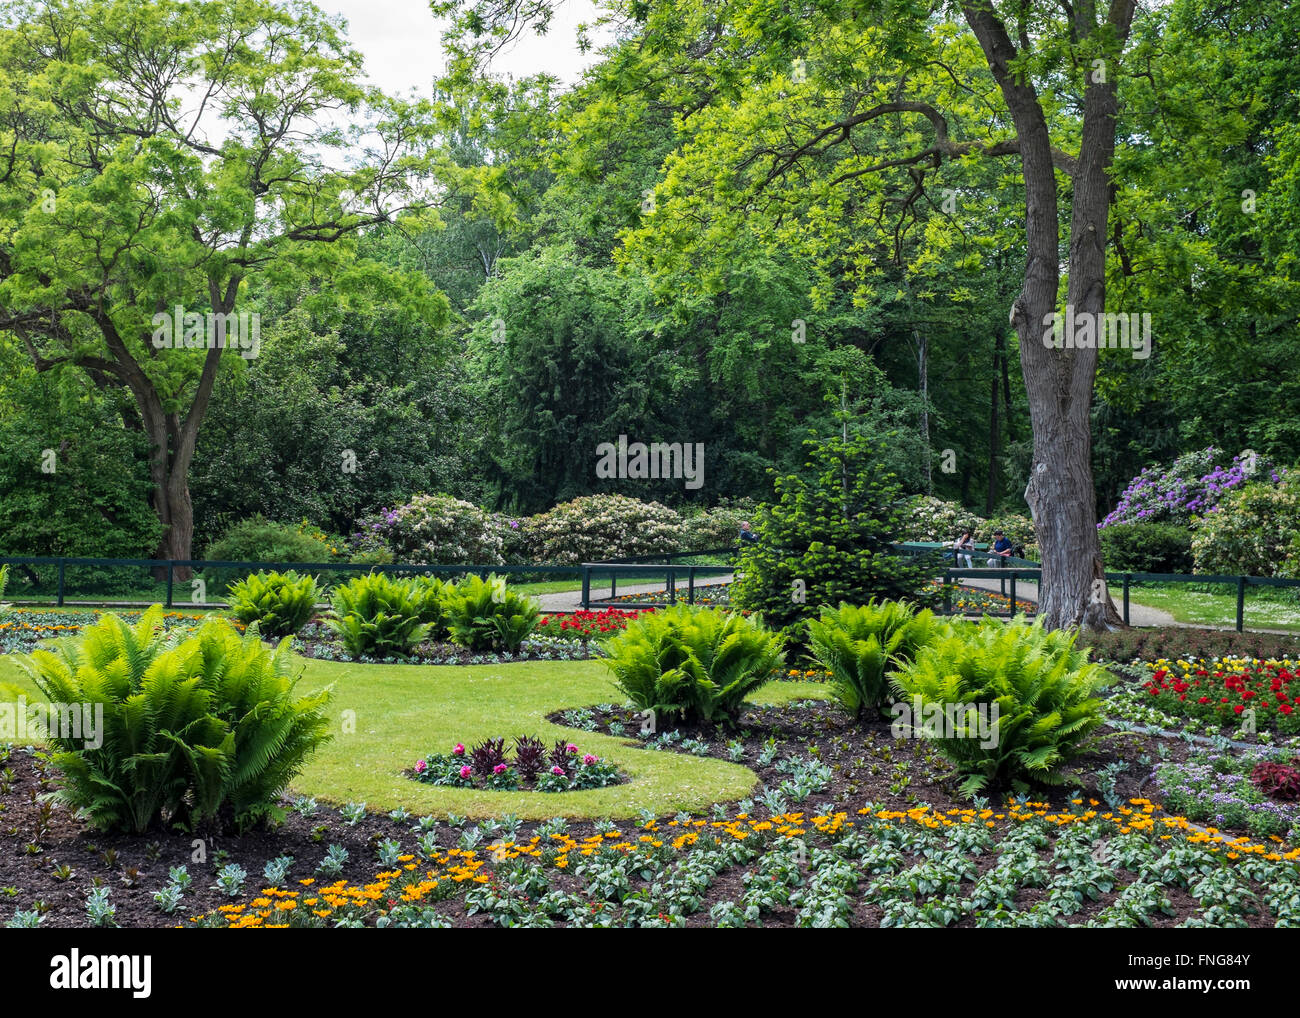 Formal Flower Garden With Bedding Plants In Tiergarten